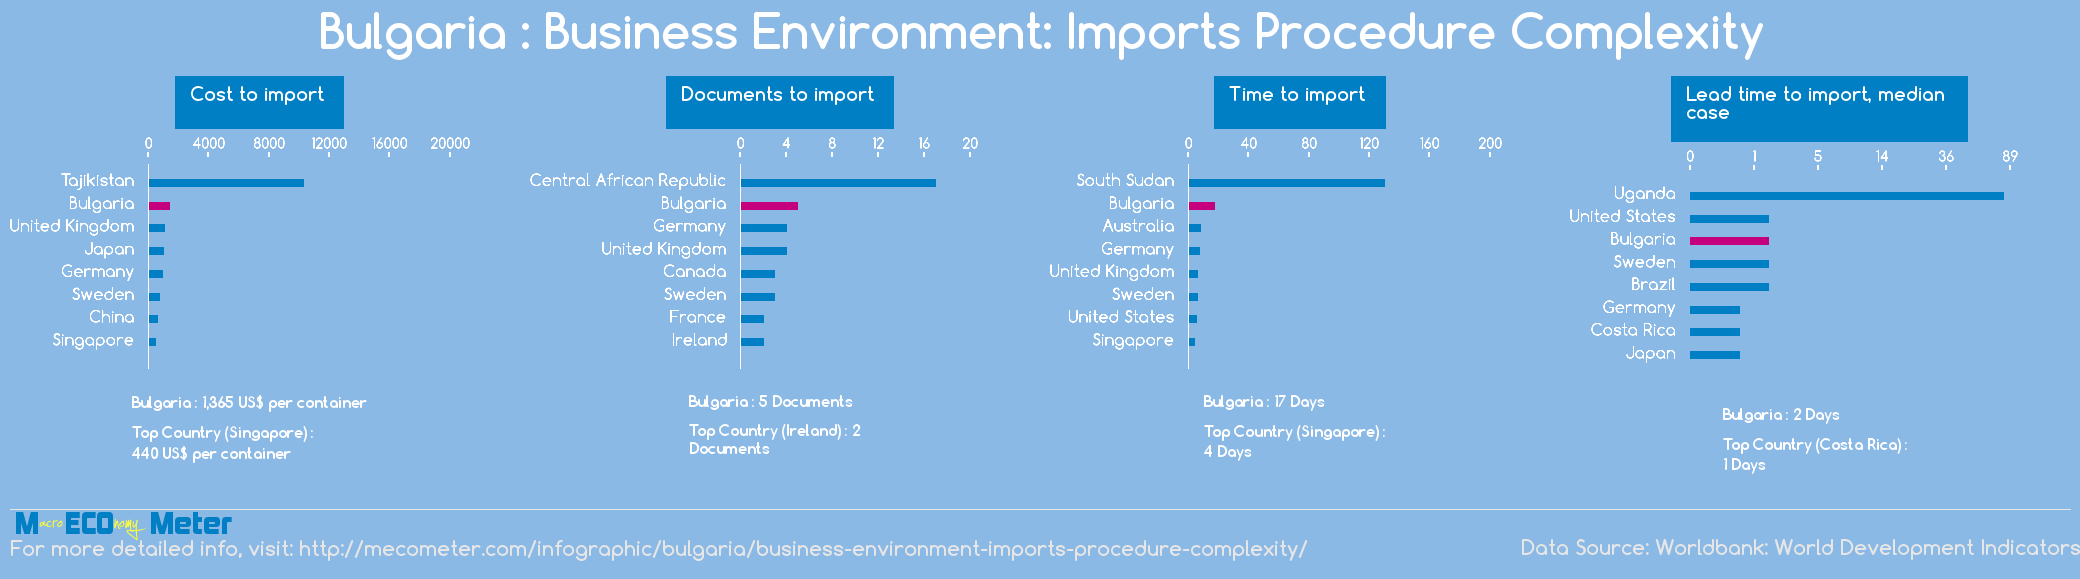 Bulgaria : Business Environment: Imports Procedure Complexity